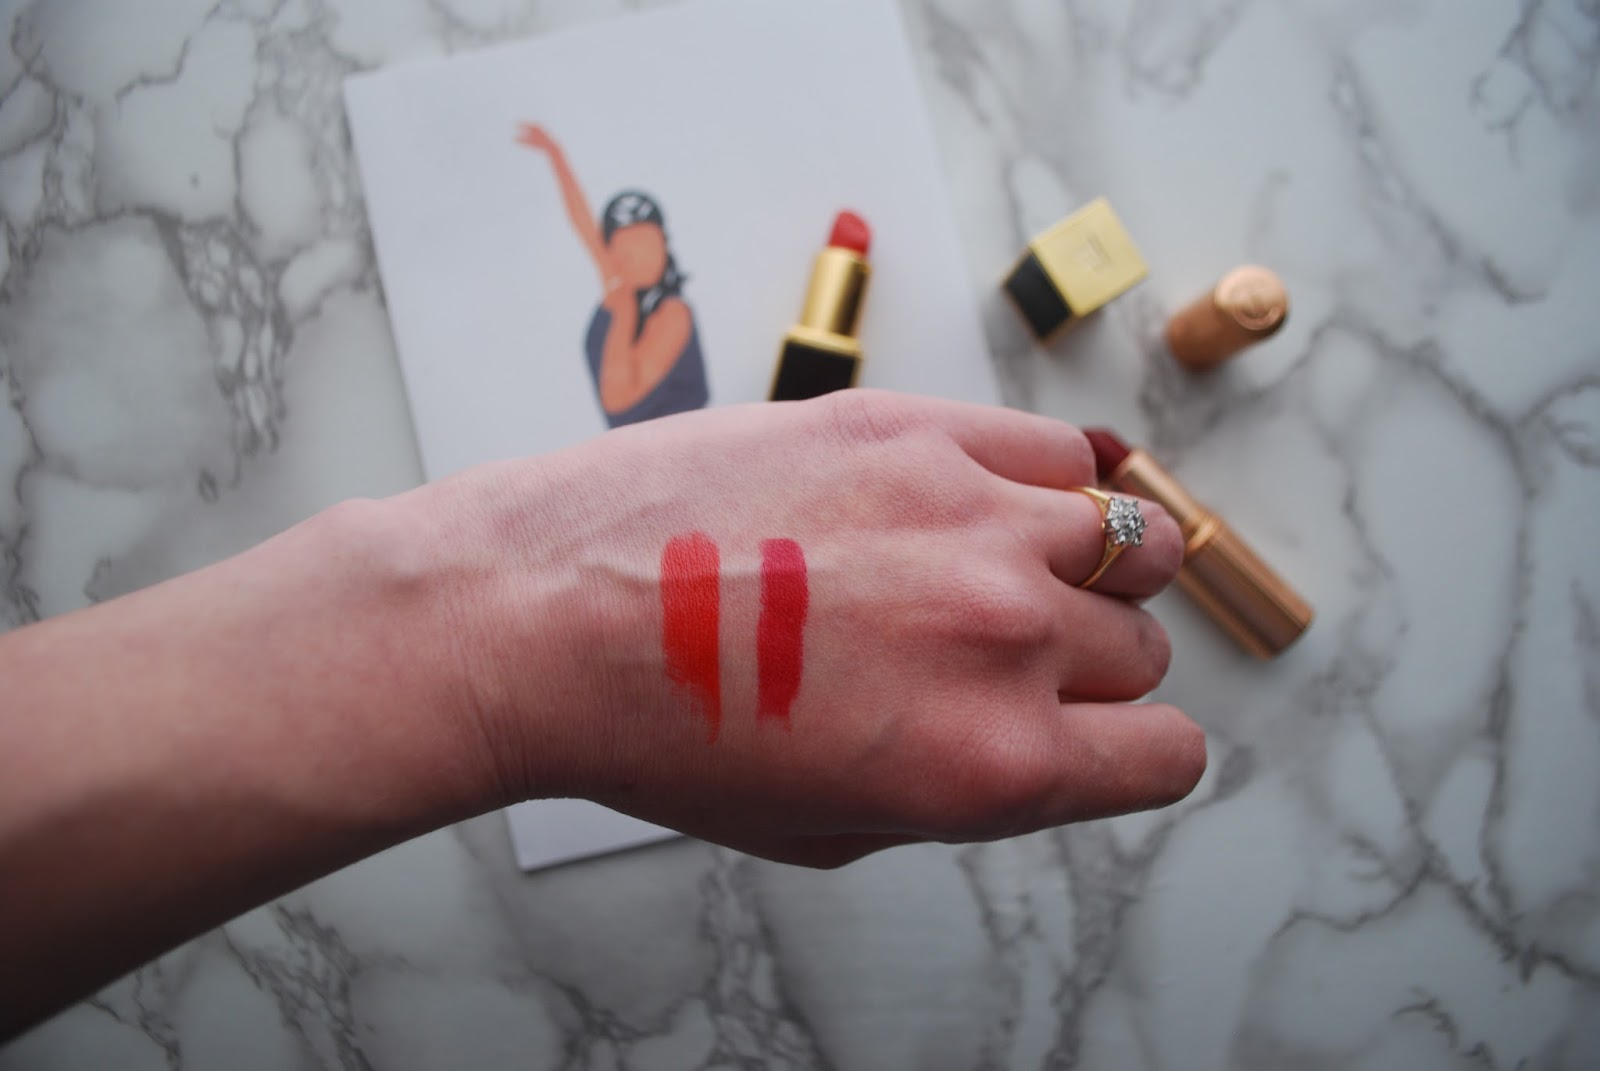 Tom Ford Wild Ginger Charlotte Tilbury Red Carpet Red swatch swatches lipstick luxury lipstick